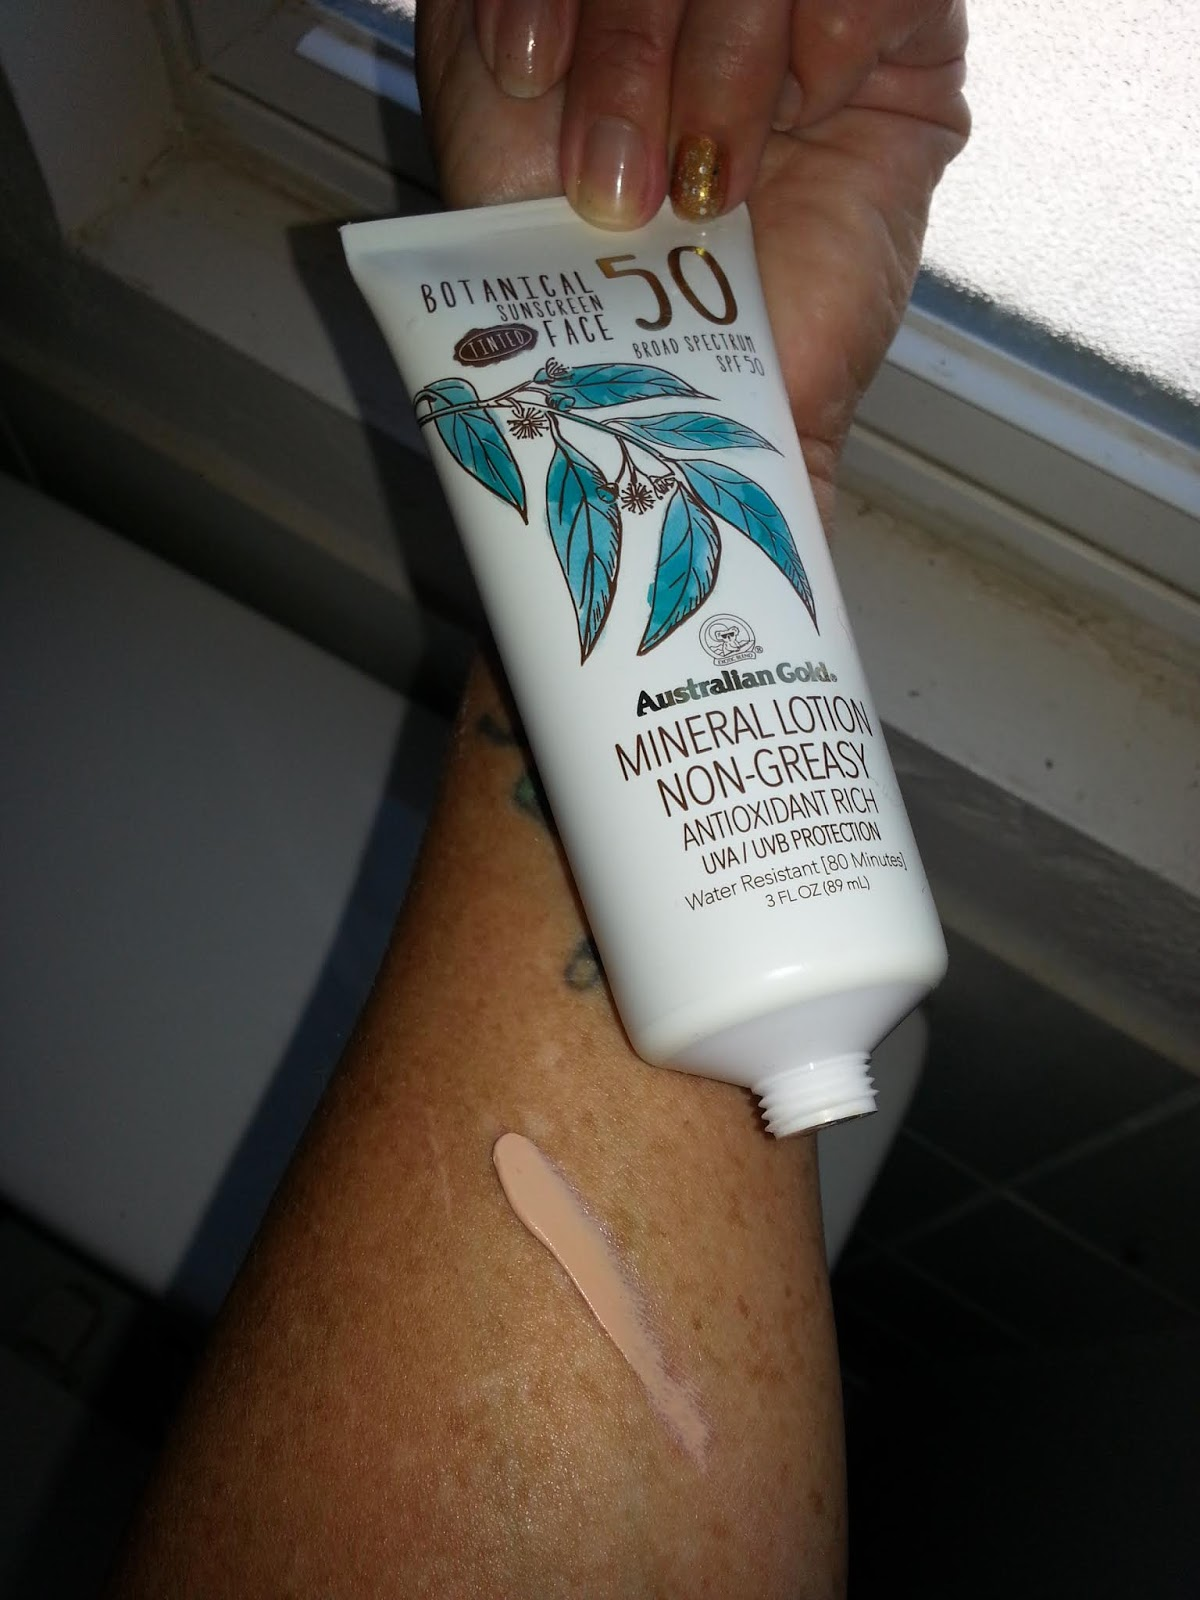 Makeup University Inc Australian Gold Botanical Sunsreen In Spf 50 What Labor Day Weekend Needs